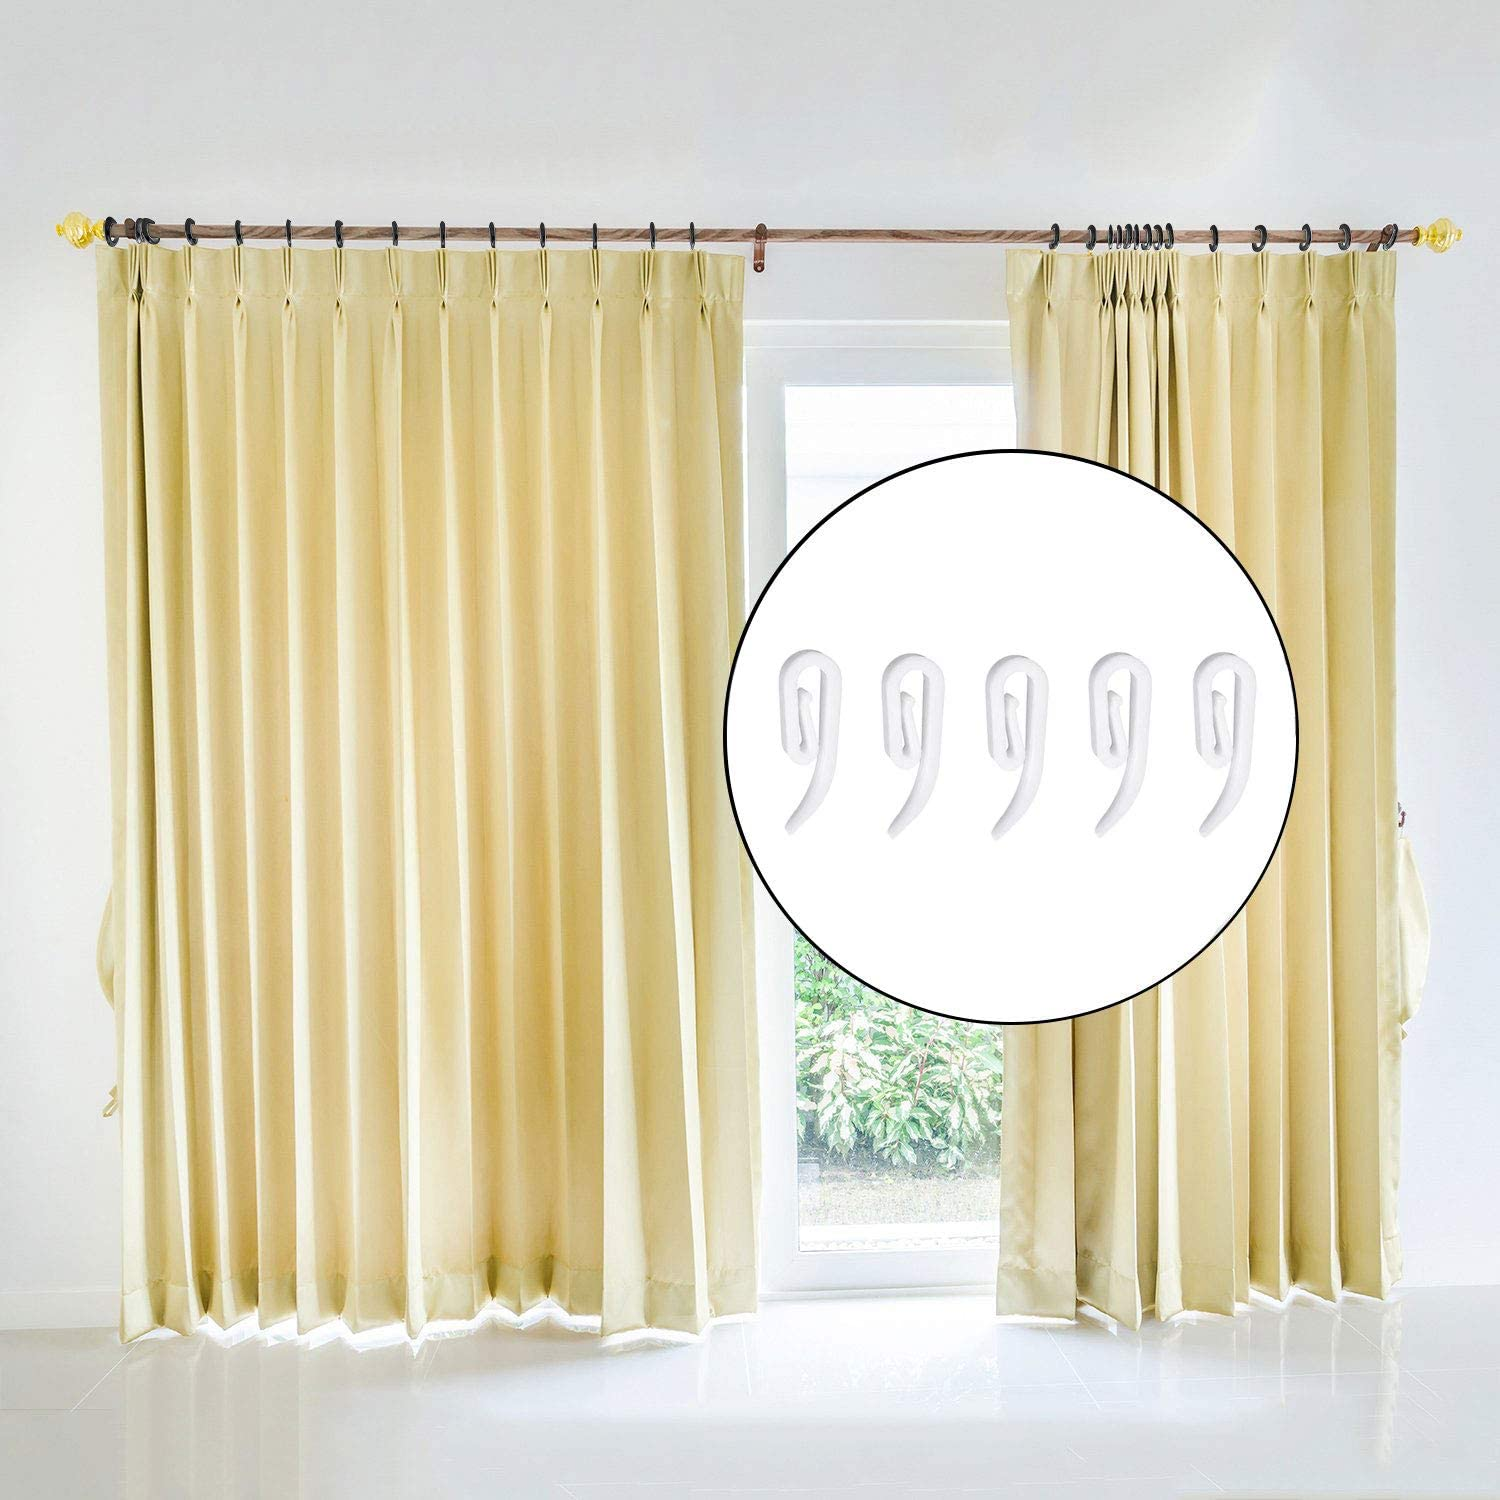 BSTHP Plastic Curtain Hooks for Window Door Curtain and Shower 100Packs, 2.8 x1.2 cm, White